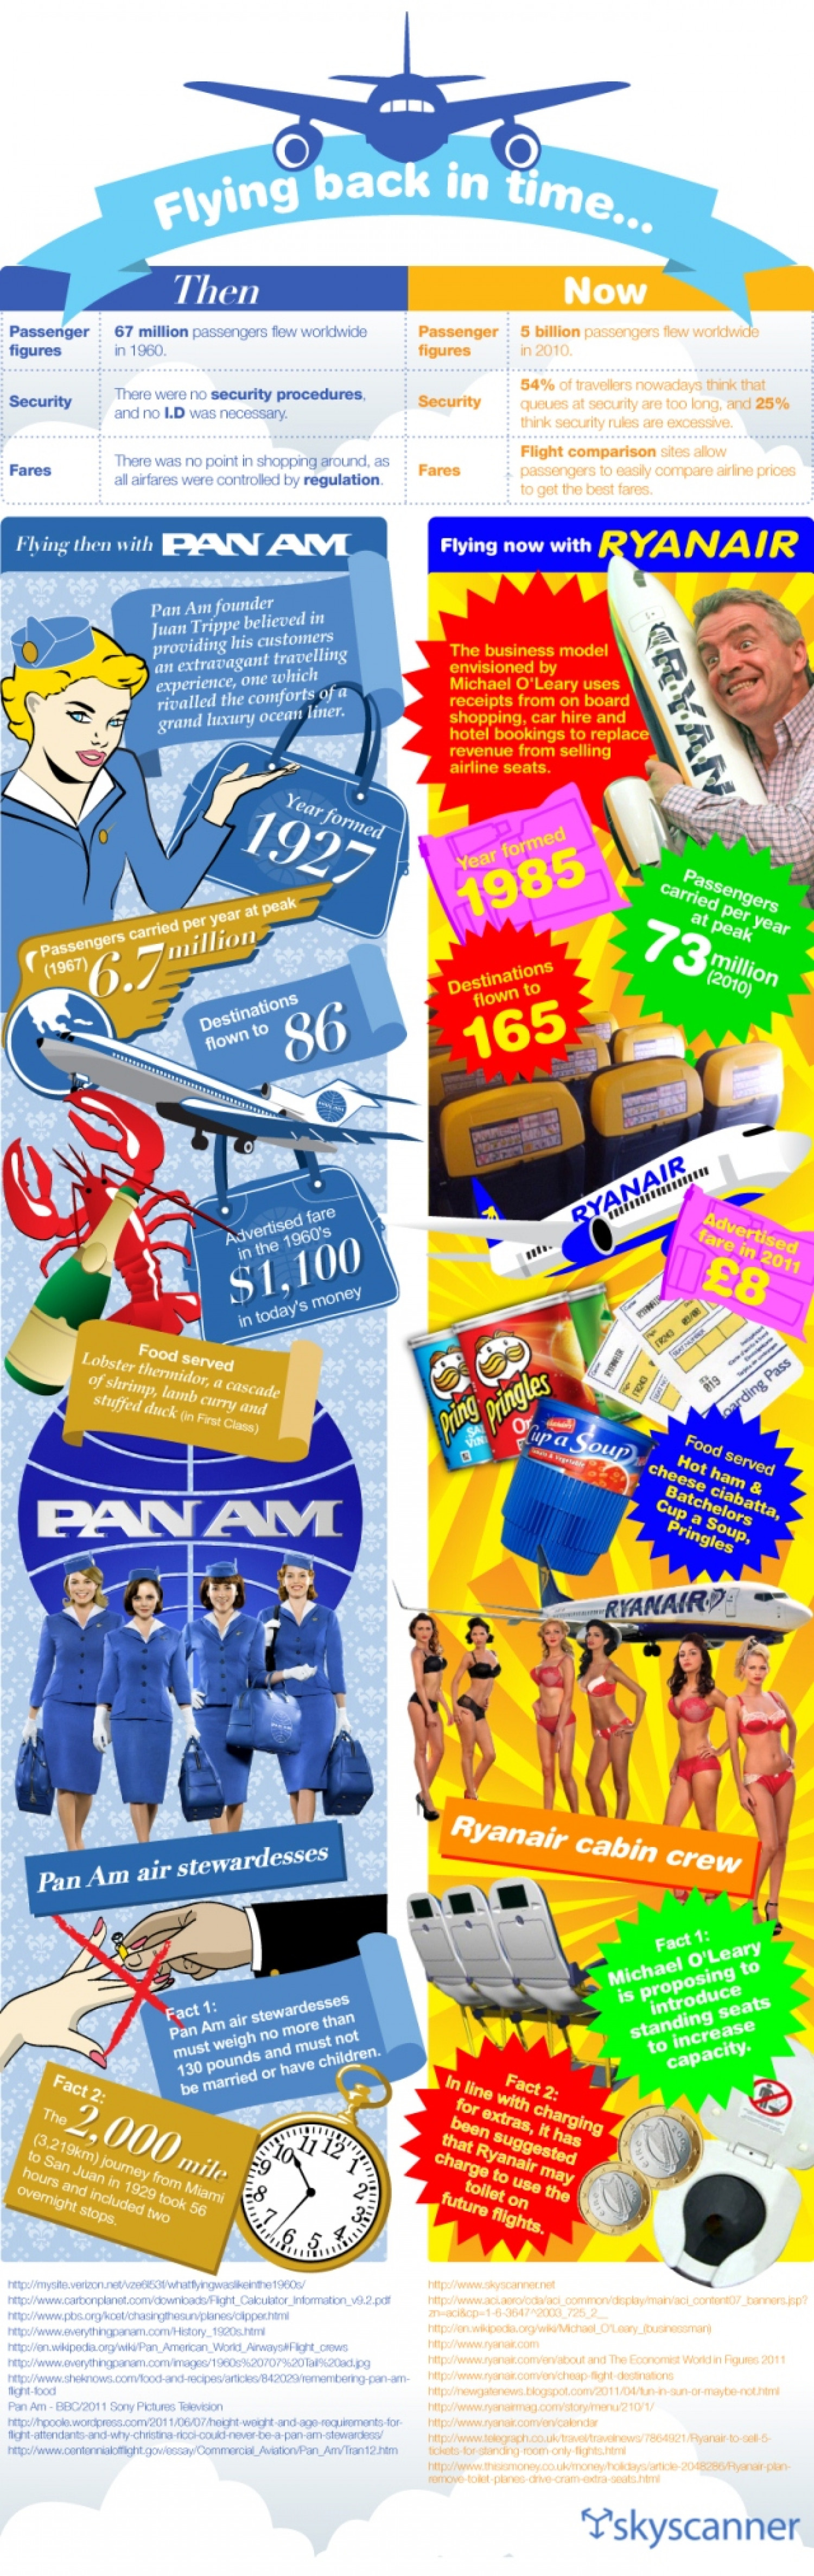 Pan AM VS Ryanair - Flying Back in Time Infographic